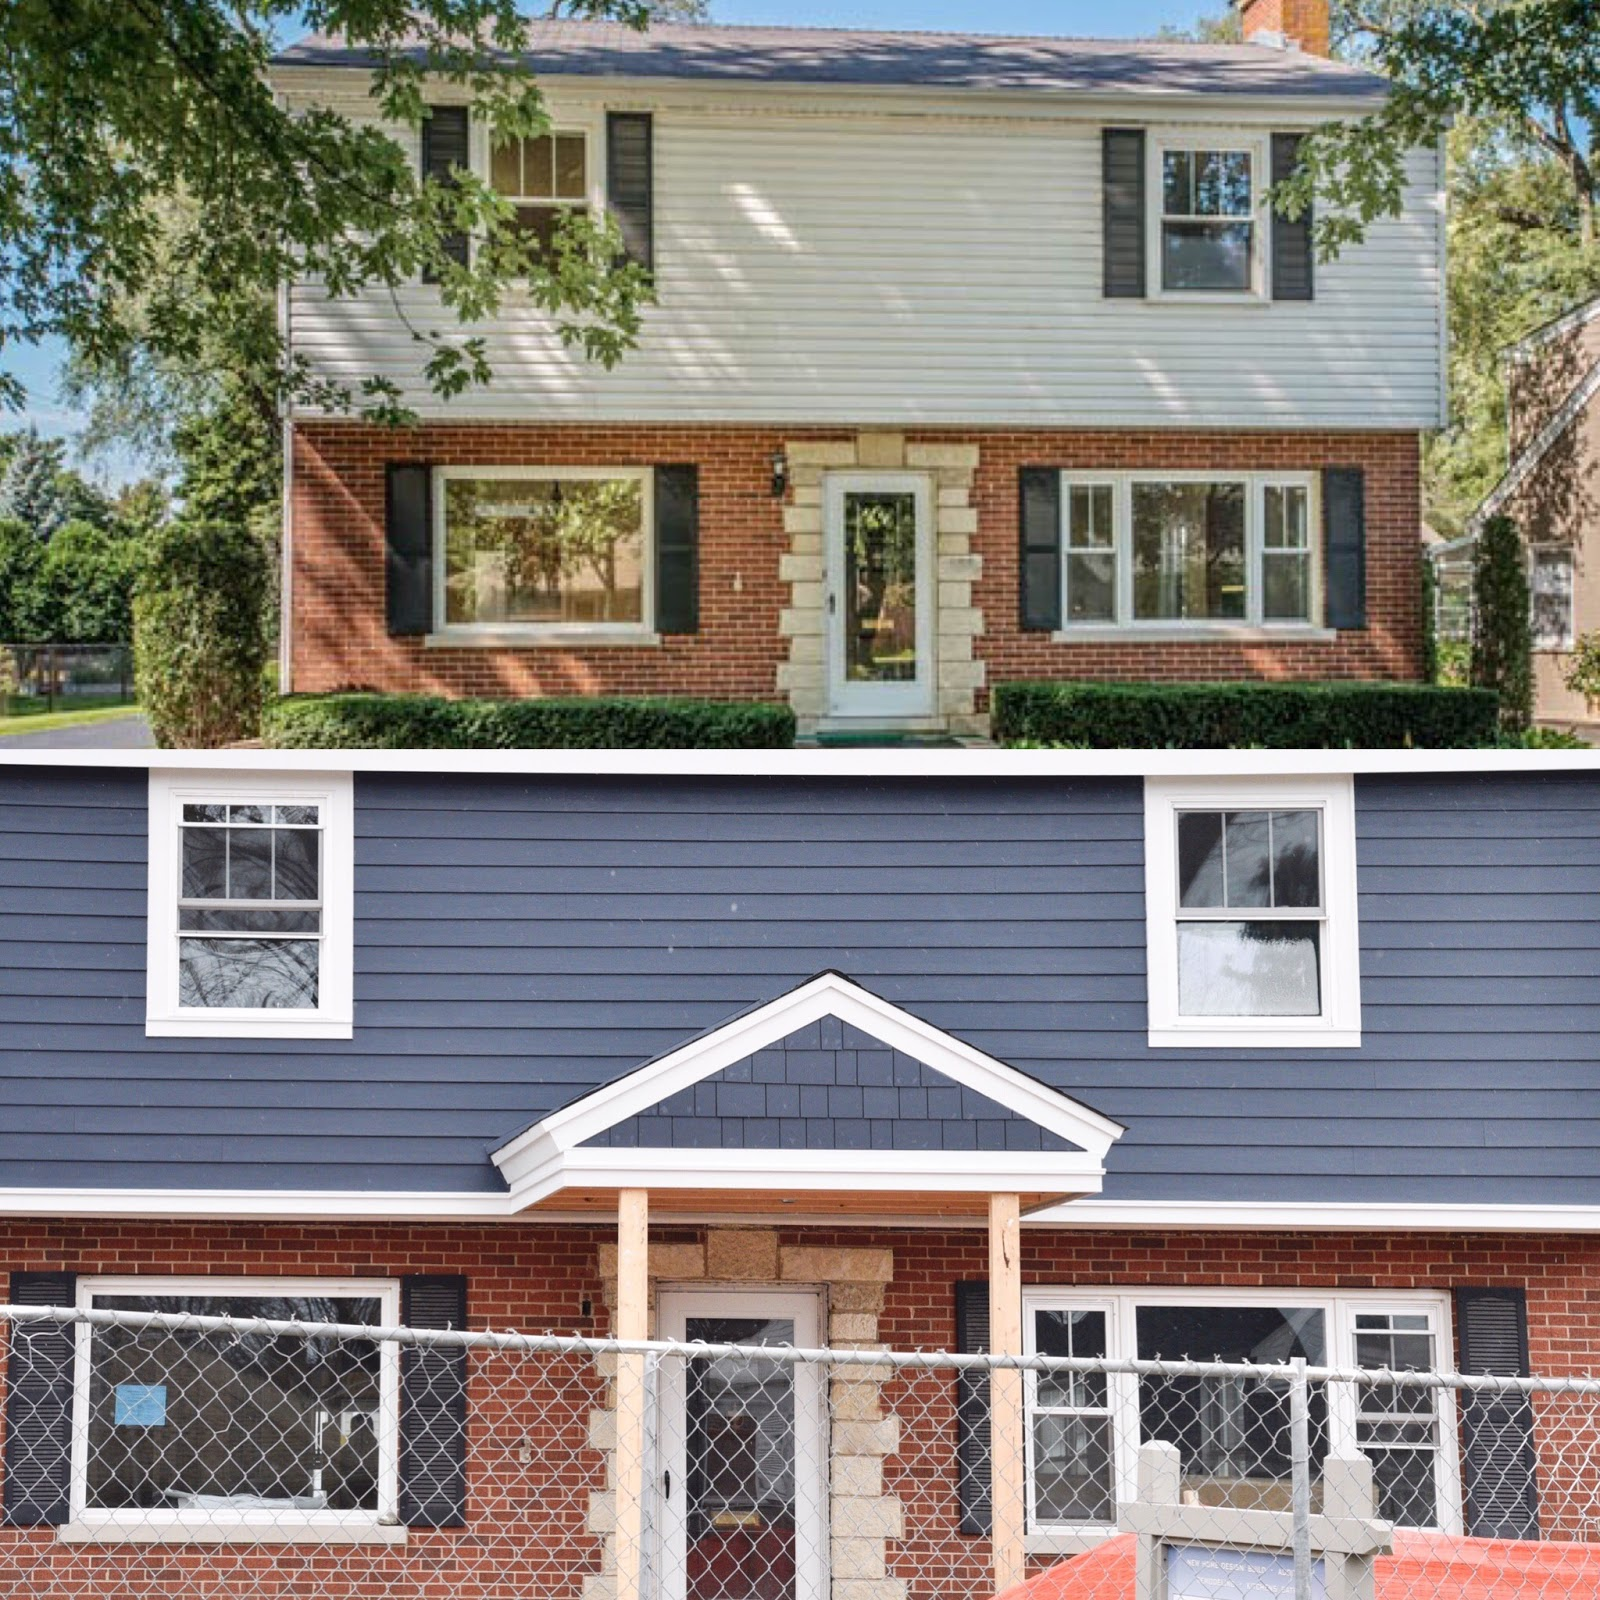 New Brick Homes: Picking Blue Exterior Siding With Red Brick